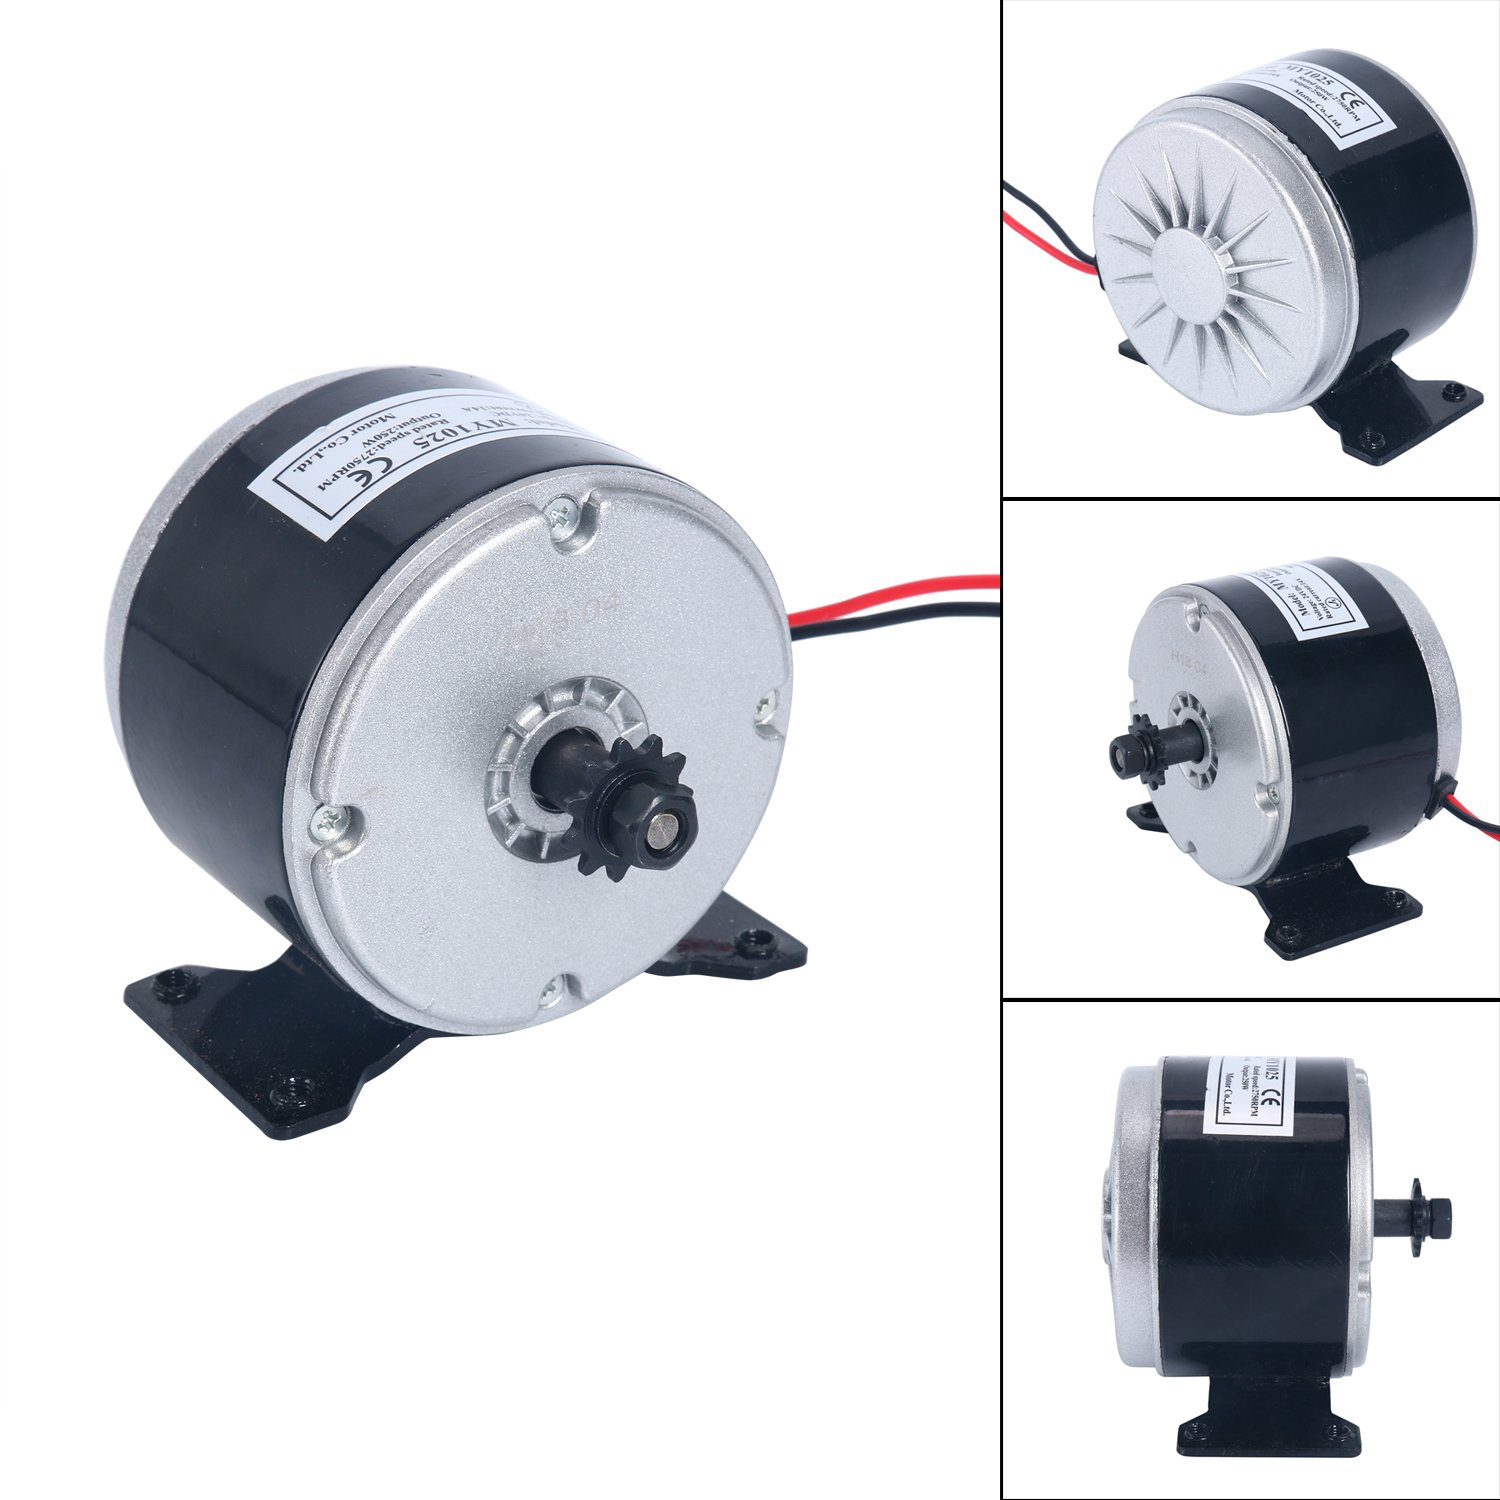 Yaegoo 24V Electric Motor Brushed 250W 2750RPM Chain For E Scooter Drive Speed Control